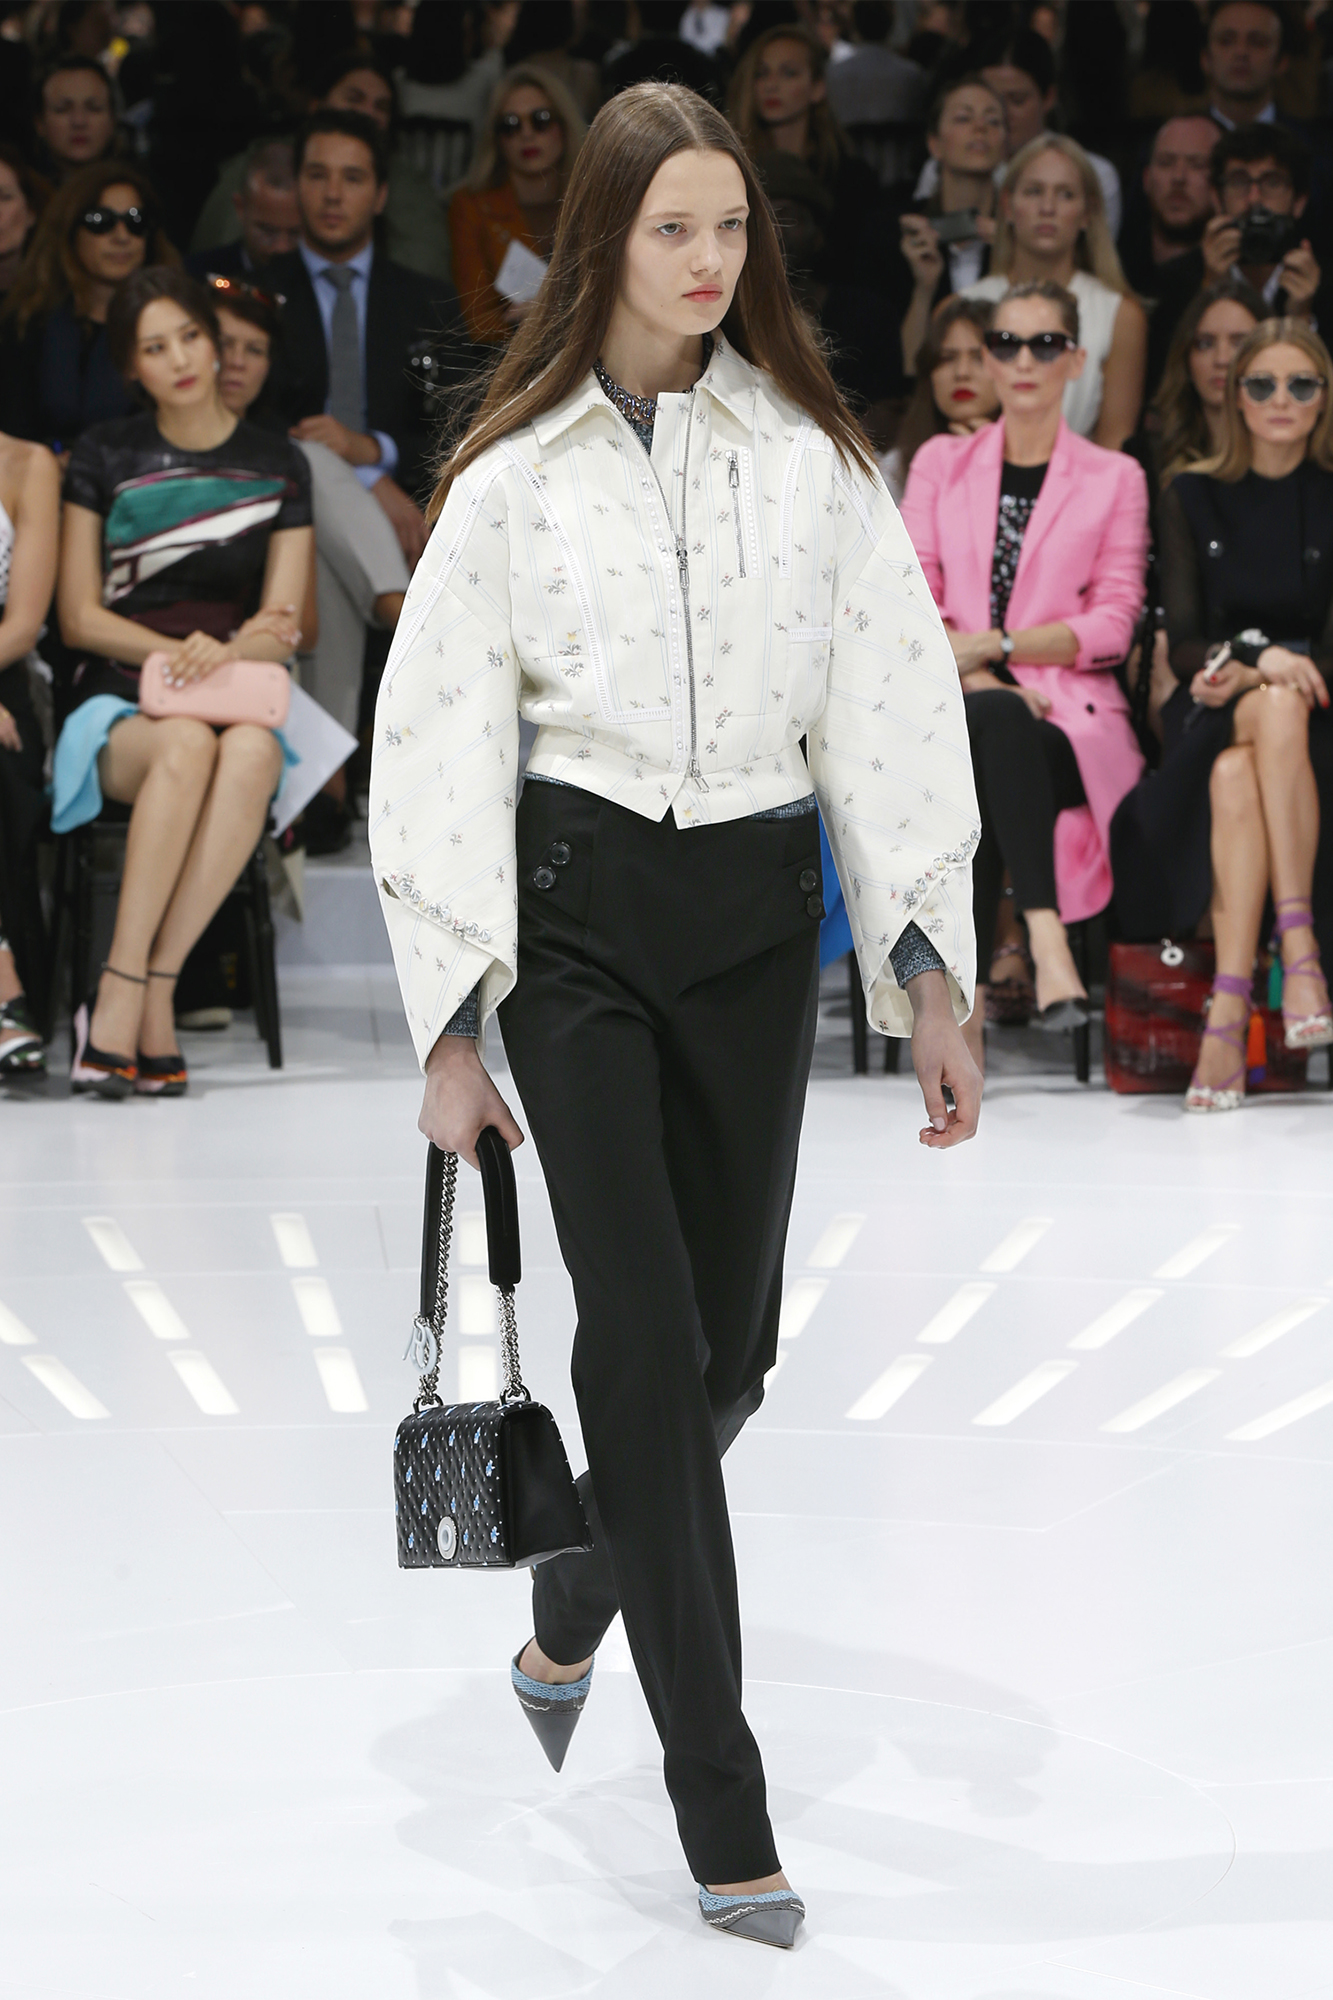 New Western Fashion Christian Dior Ready To Wear Dresses Spring Summer Collection 2015 (21)